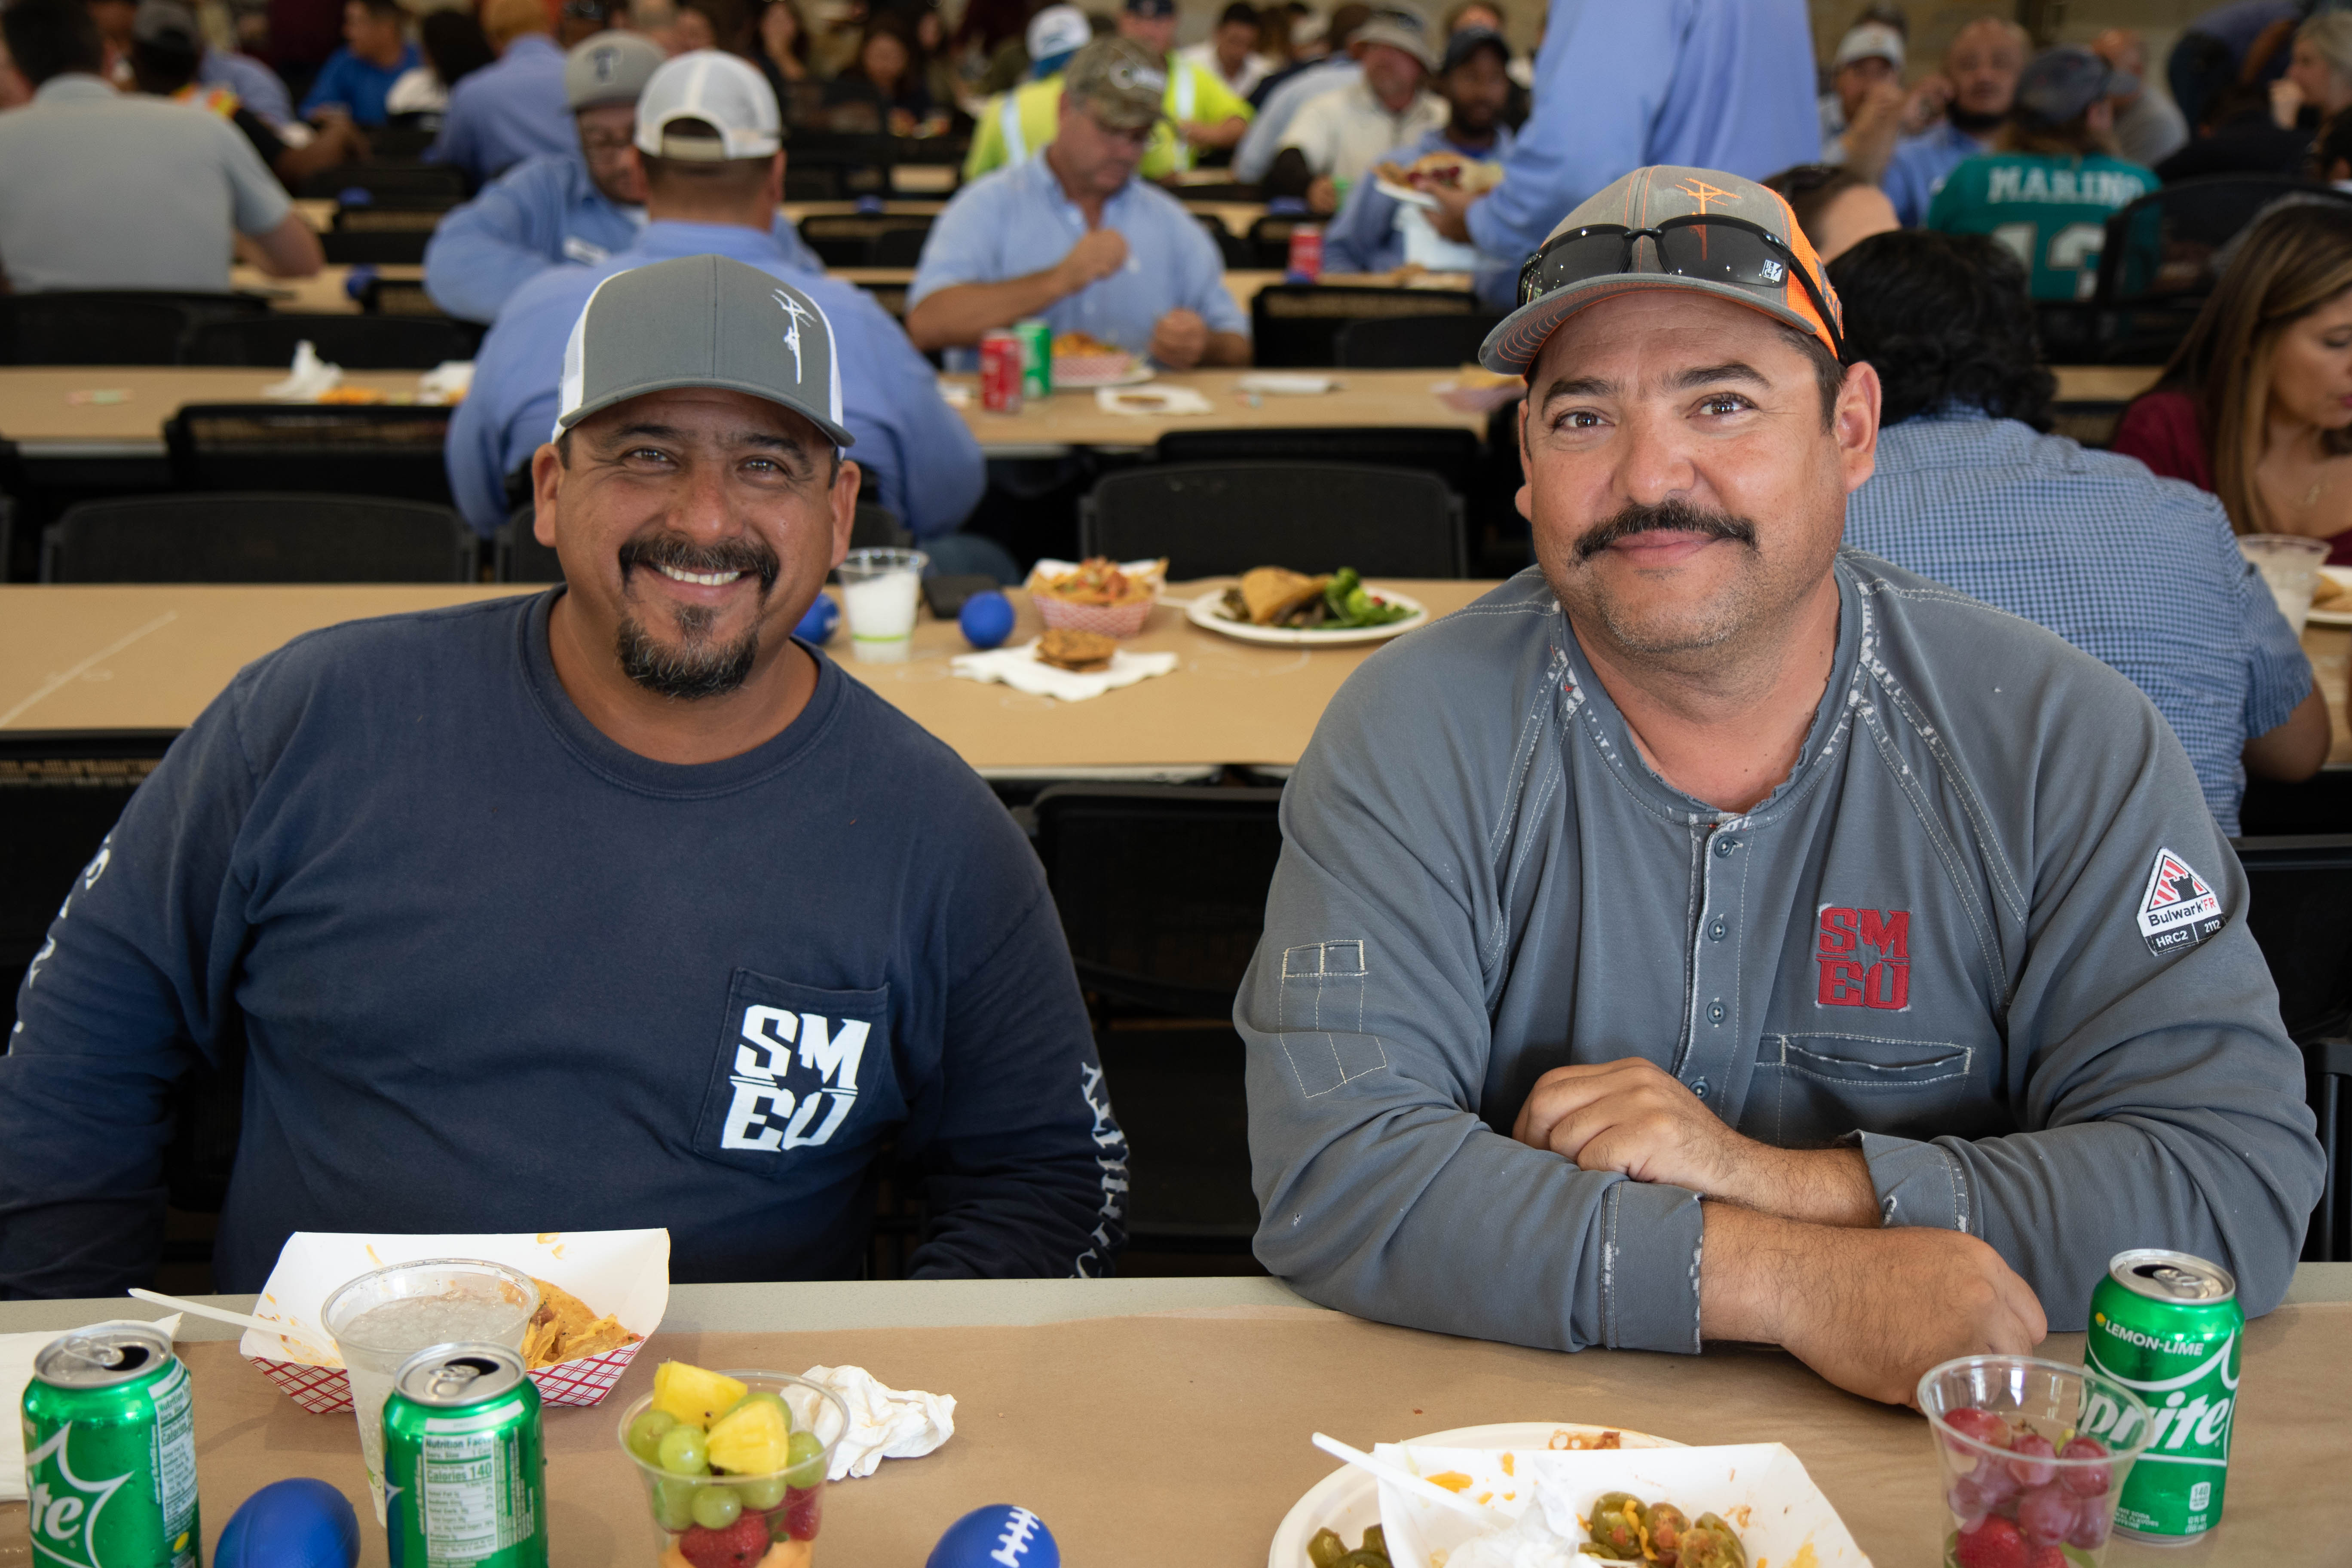 SMEU Team Members eat barbeque at a City Tailgate Party